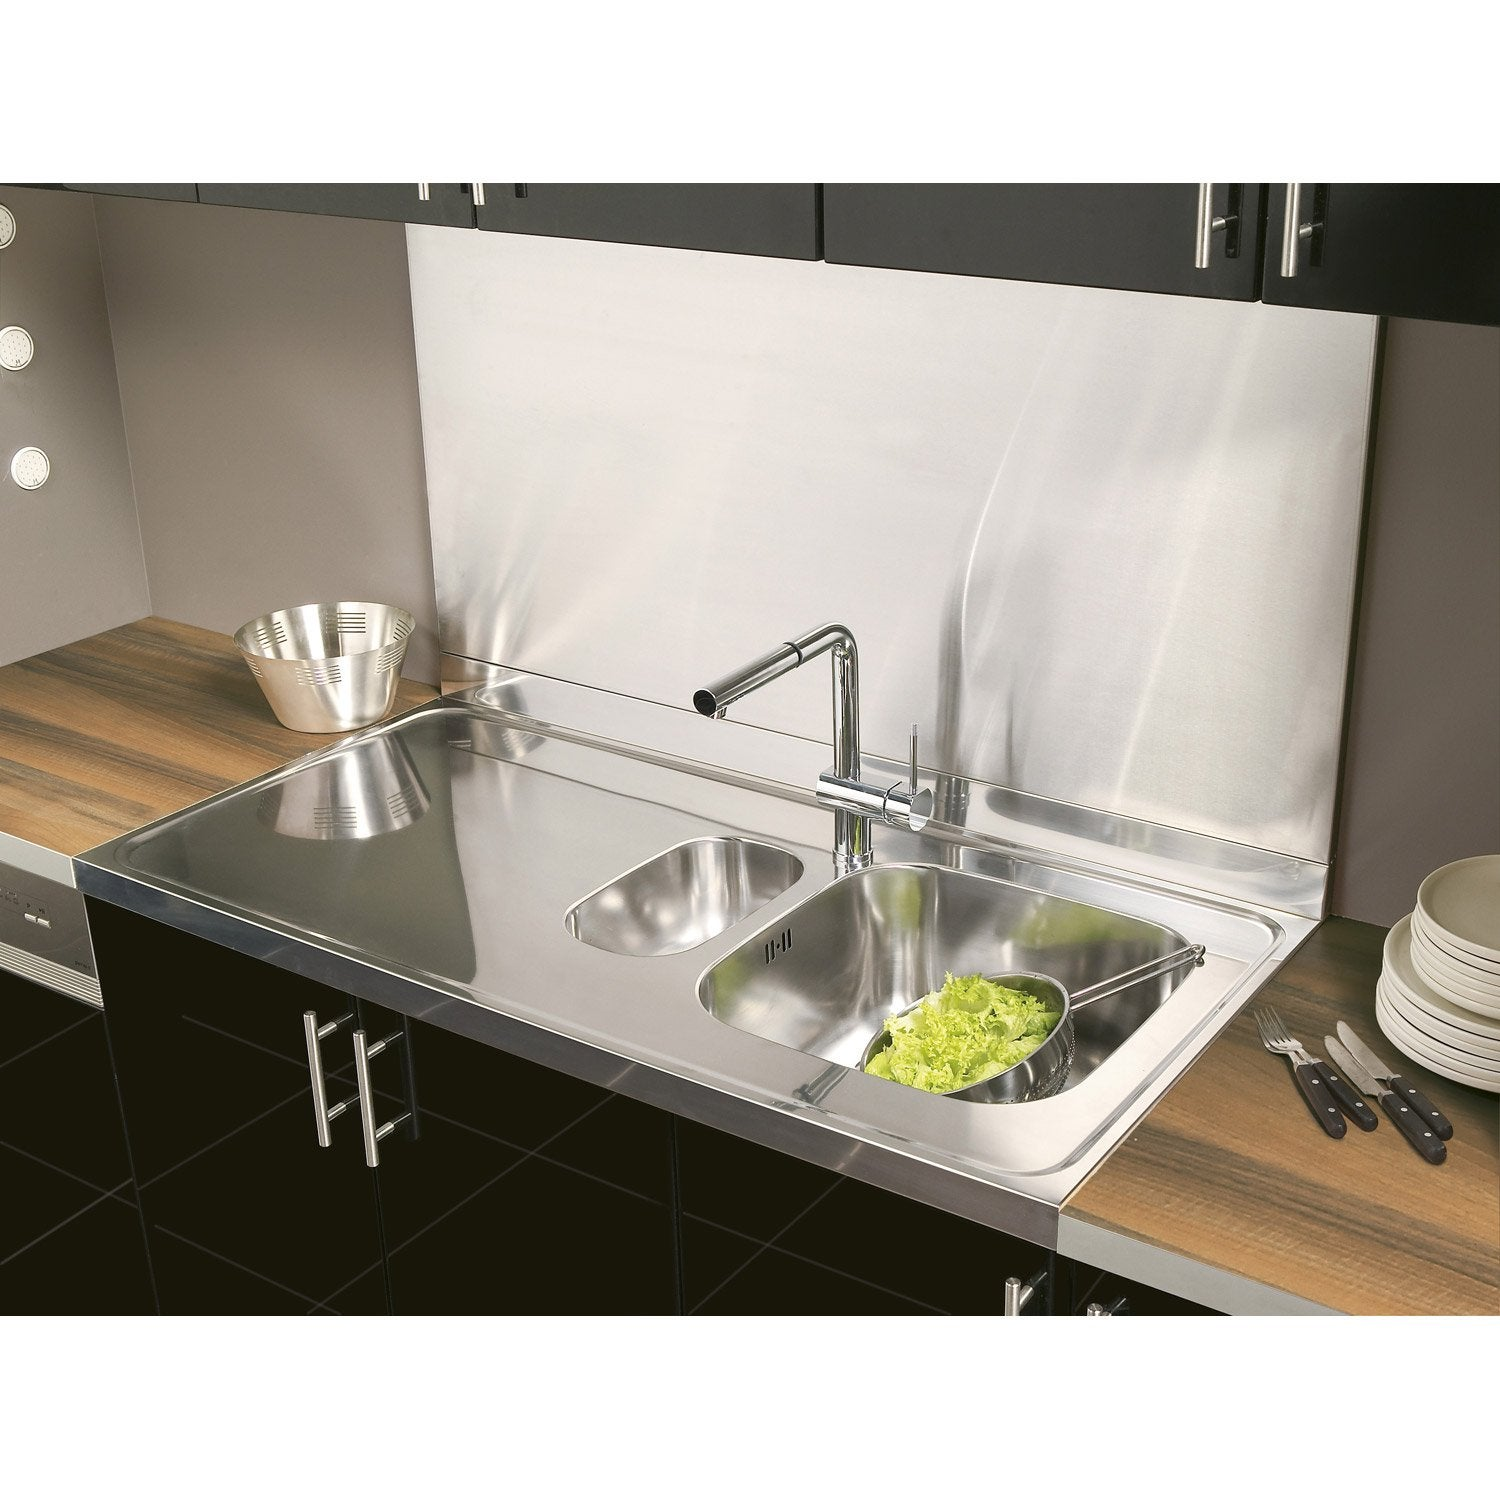 Cr dence inox cm x cm leroy merlin for Credence pour plan de travail